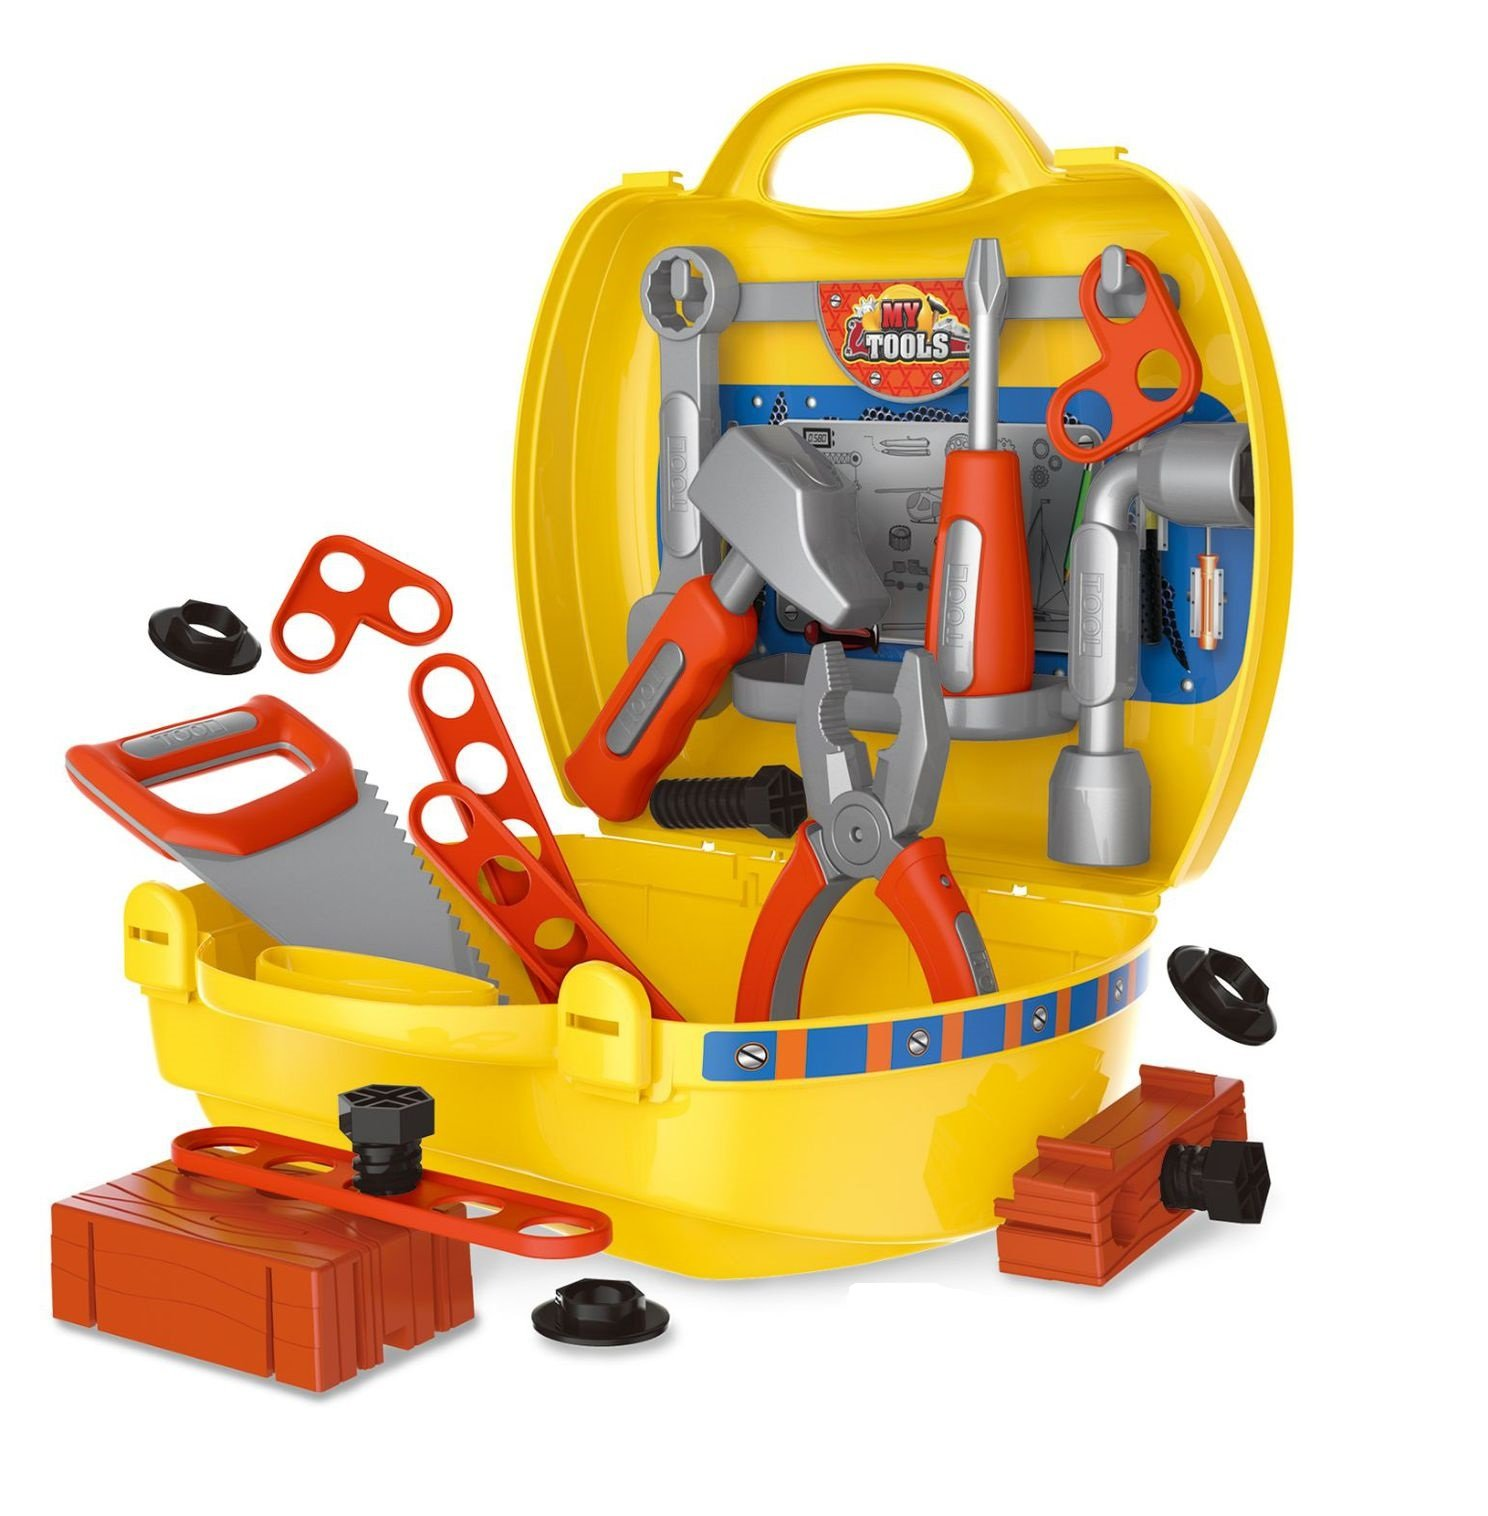 Toyshine DIY Portable Tool Set Toy with Briefcase, Accessories product image